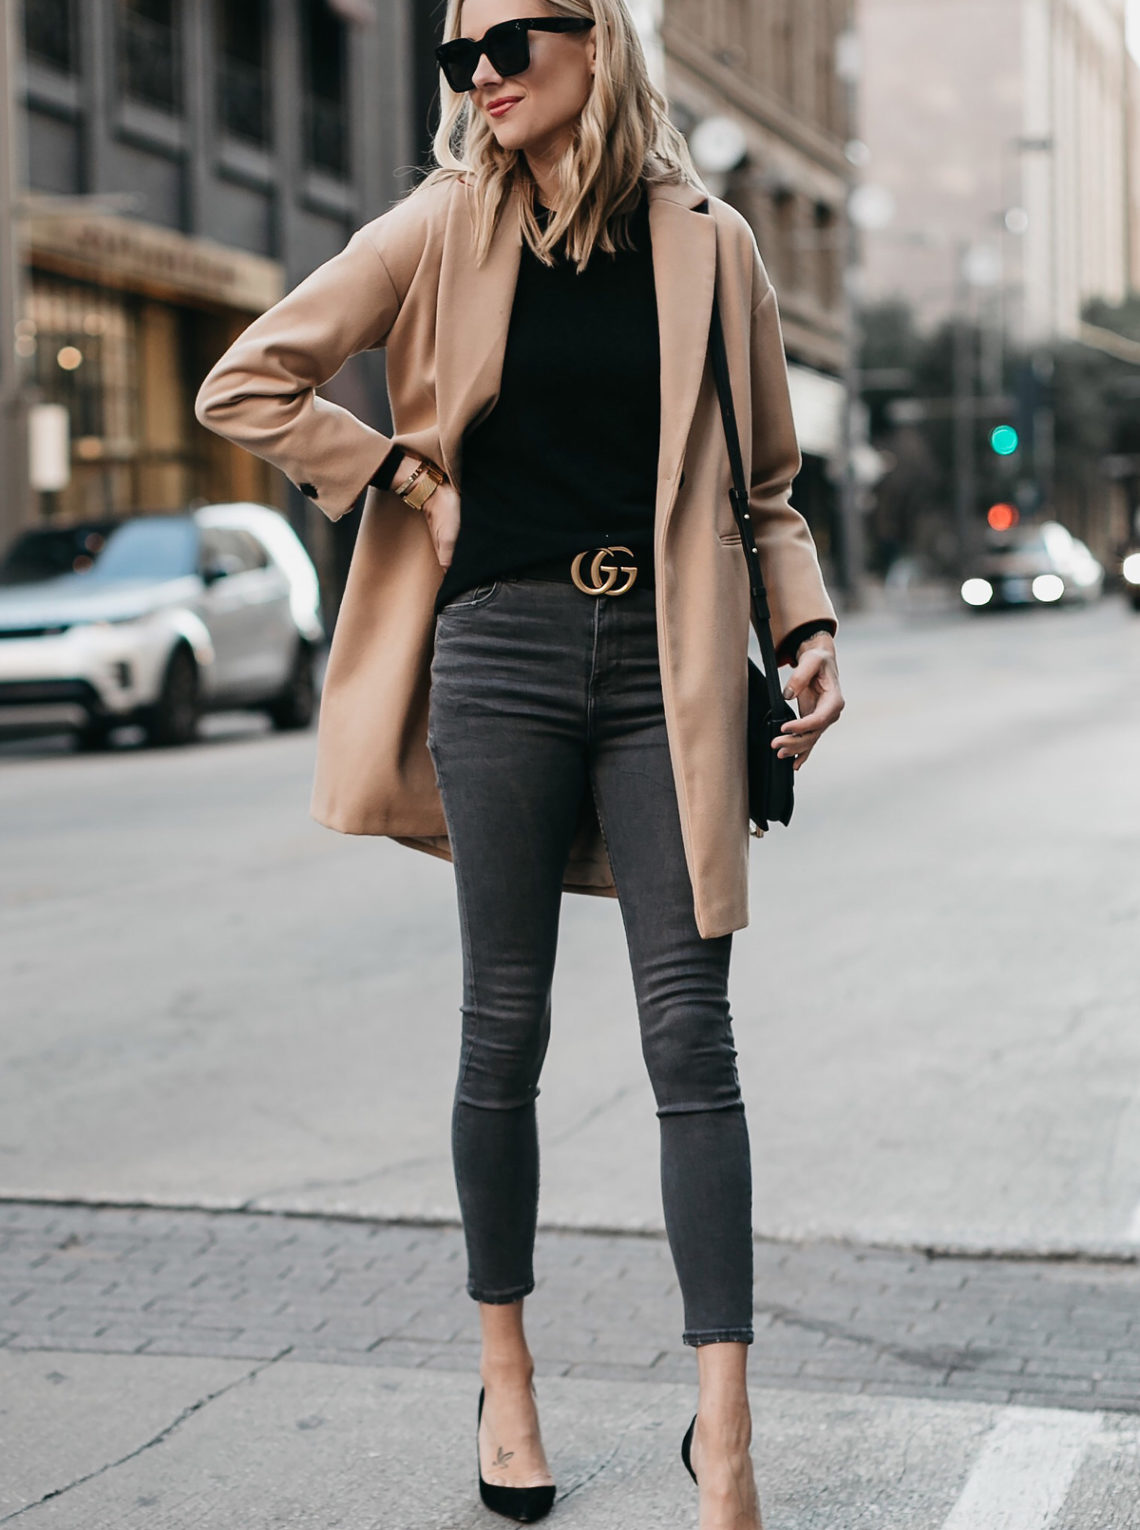 Blonde Woman Wearing Topshop Camel Coat Black Sweater Grey Skinny Jeans Gucci Marmont Belt Christian Louboutin Black Pumps Fashion Jackson Dallas Blogger Fashion Blogger Street Style